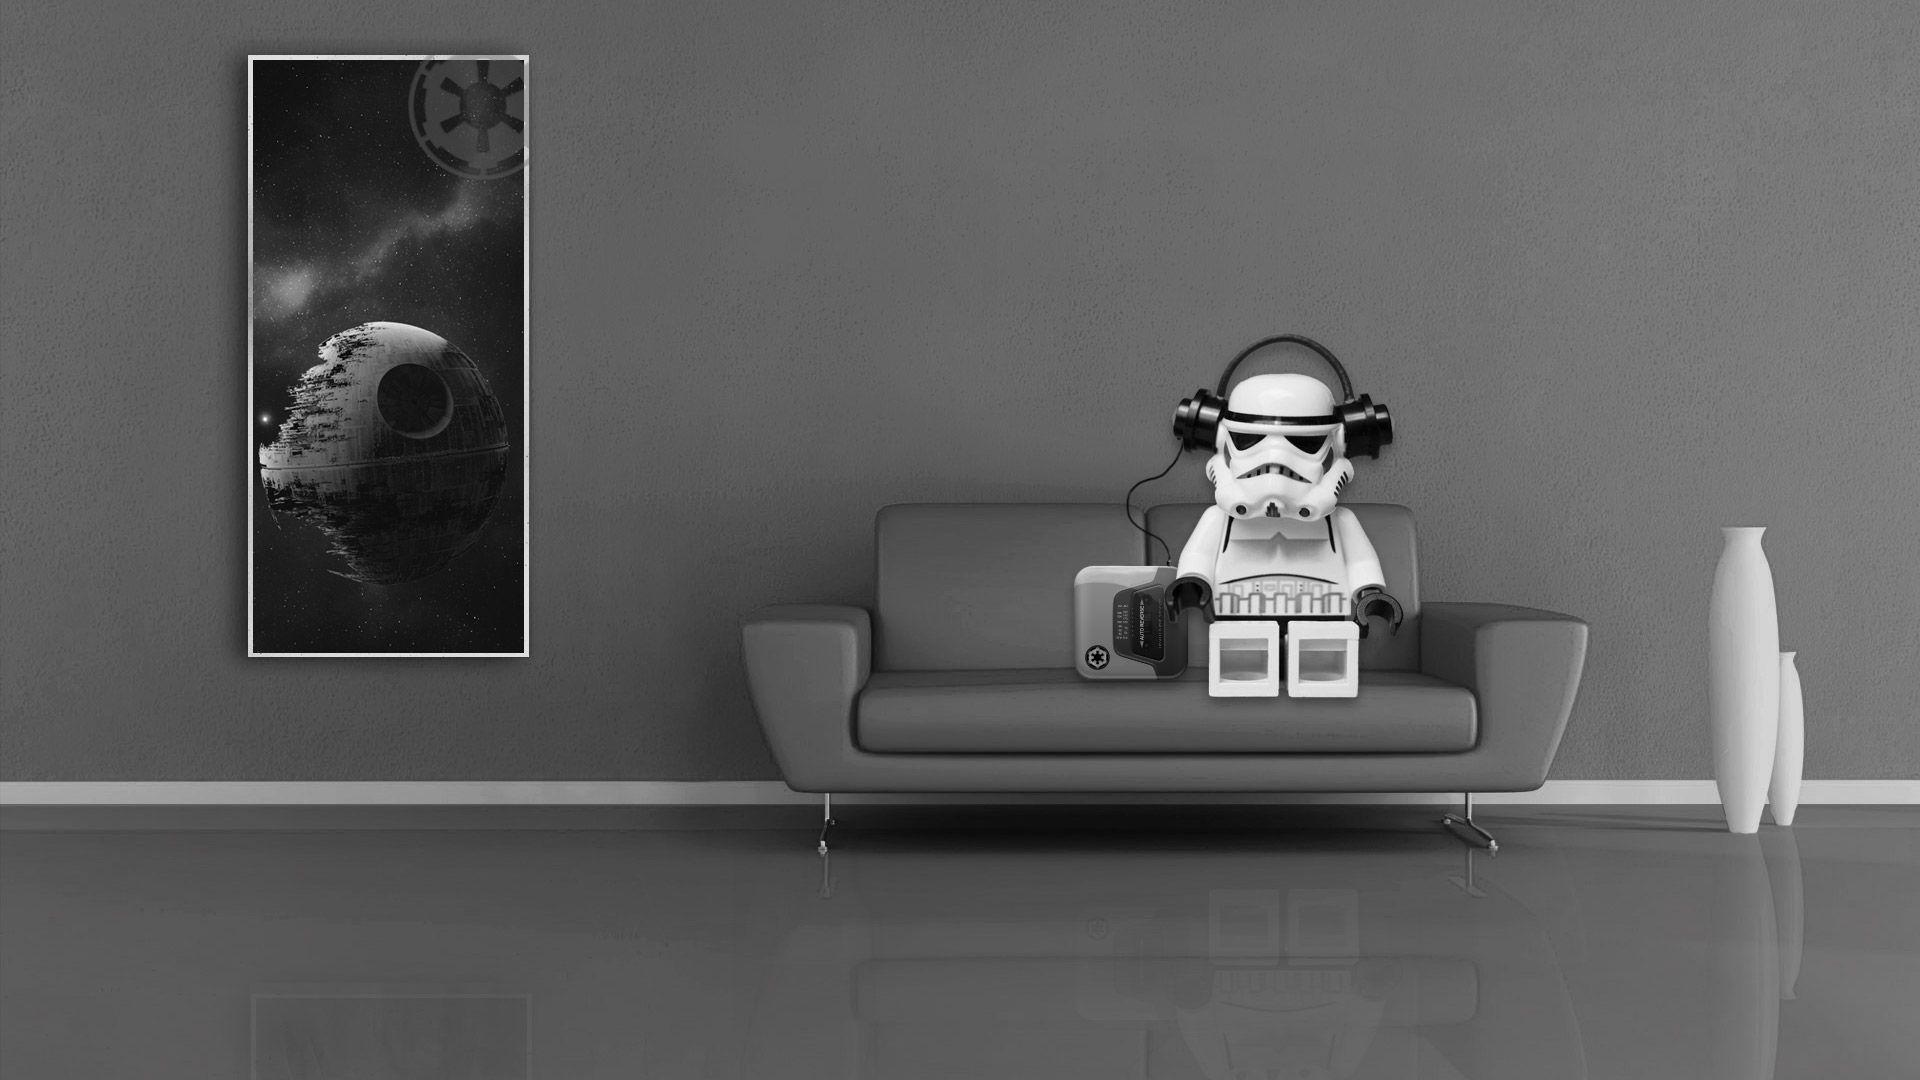 Star Wars Lego Wallpapers - Wallpaper Cave